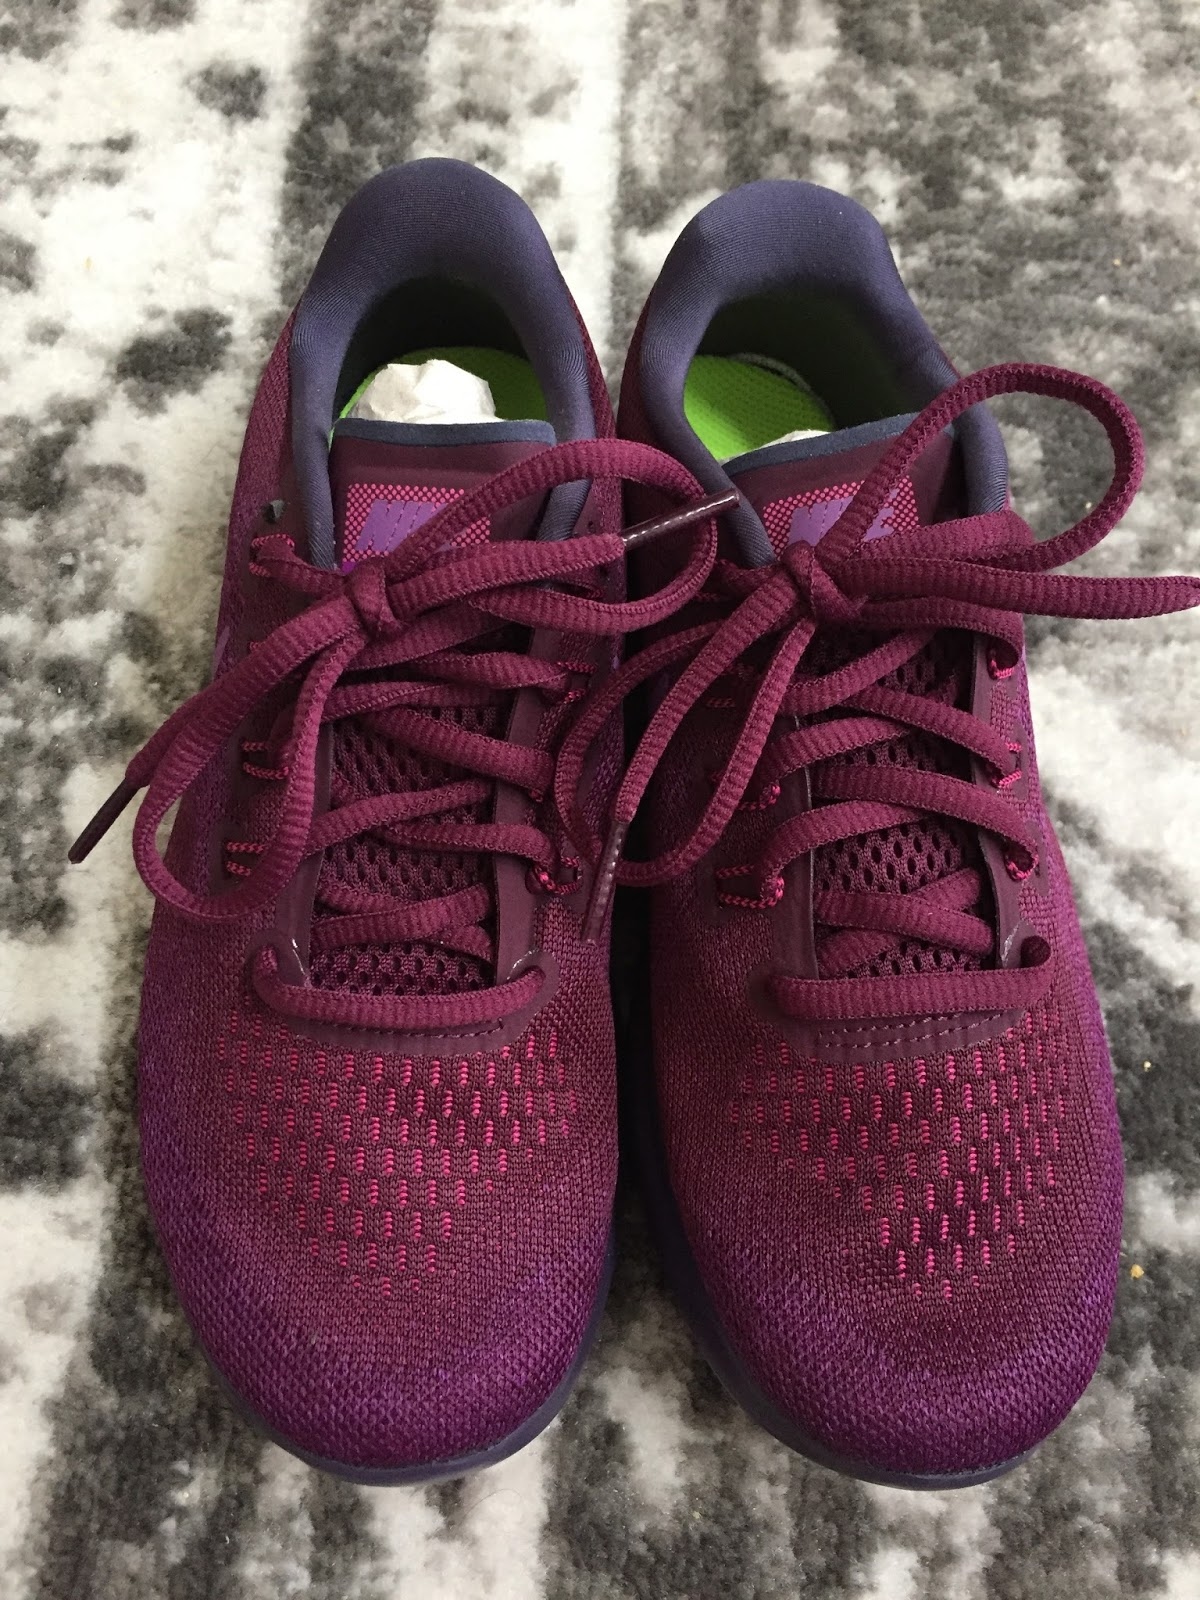 98df5d407a2 Fit- my true size is a 5.5 in Nike sneakers and these fit snug with a pair  of thin socks. If you prefer wearing thick socks I would size up at least  ...